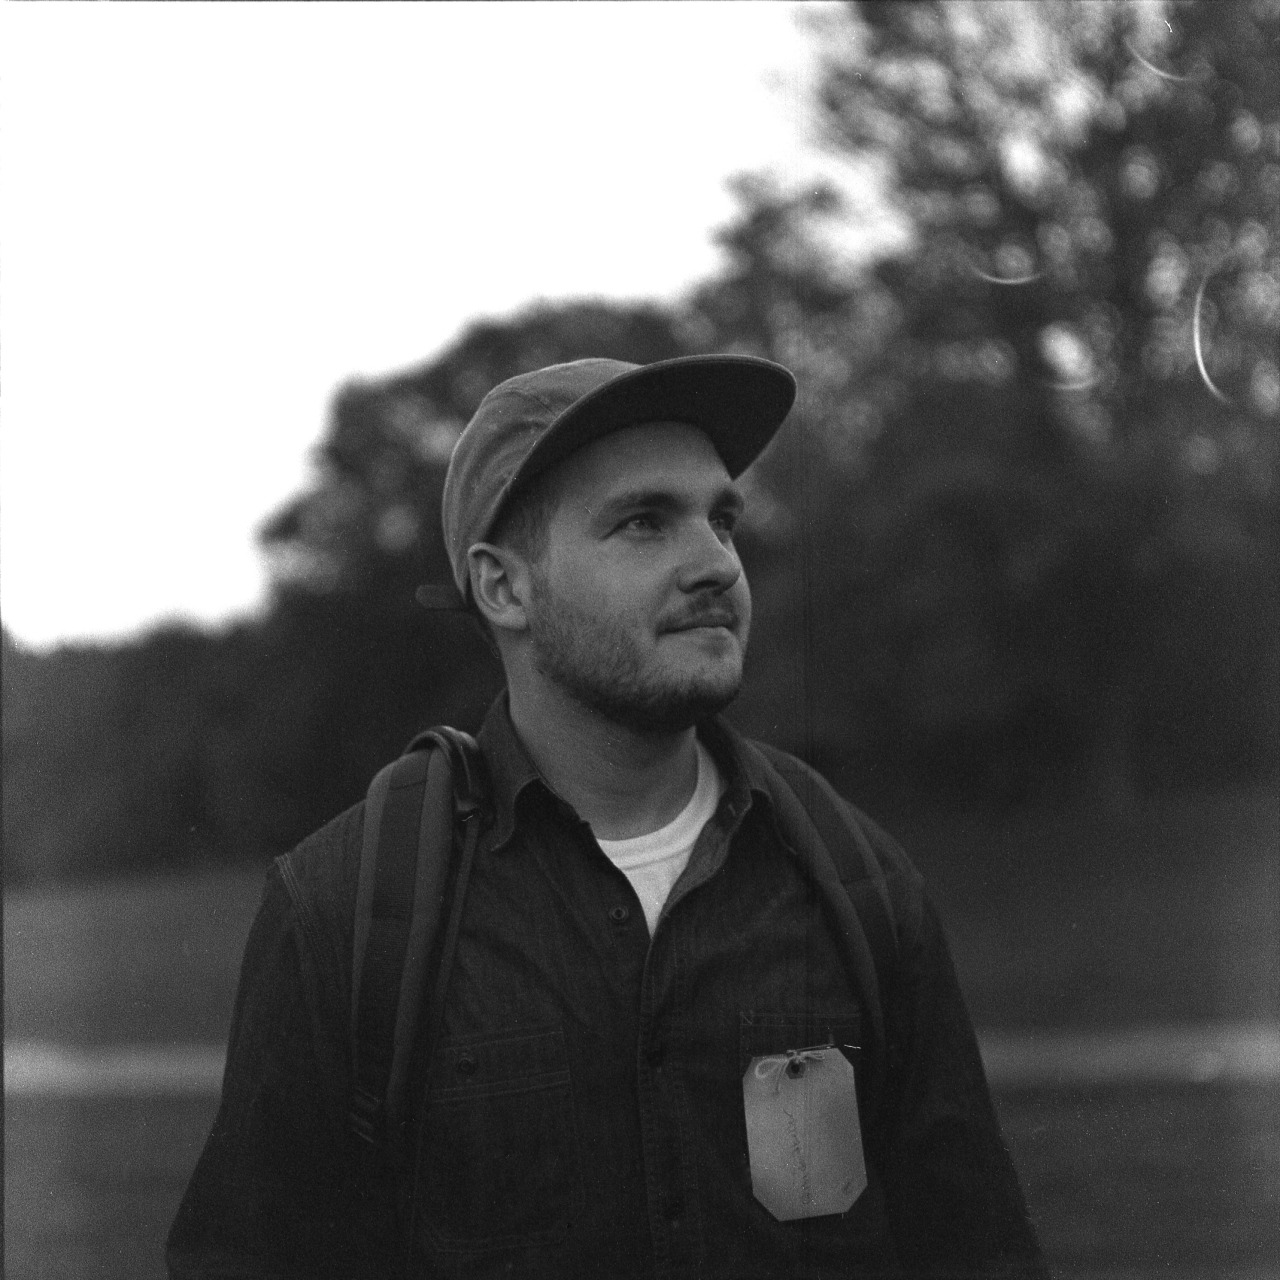 Late light portrait of photographer David Keller at the #wandertogether in Prospect Park this past weekend. Good times.